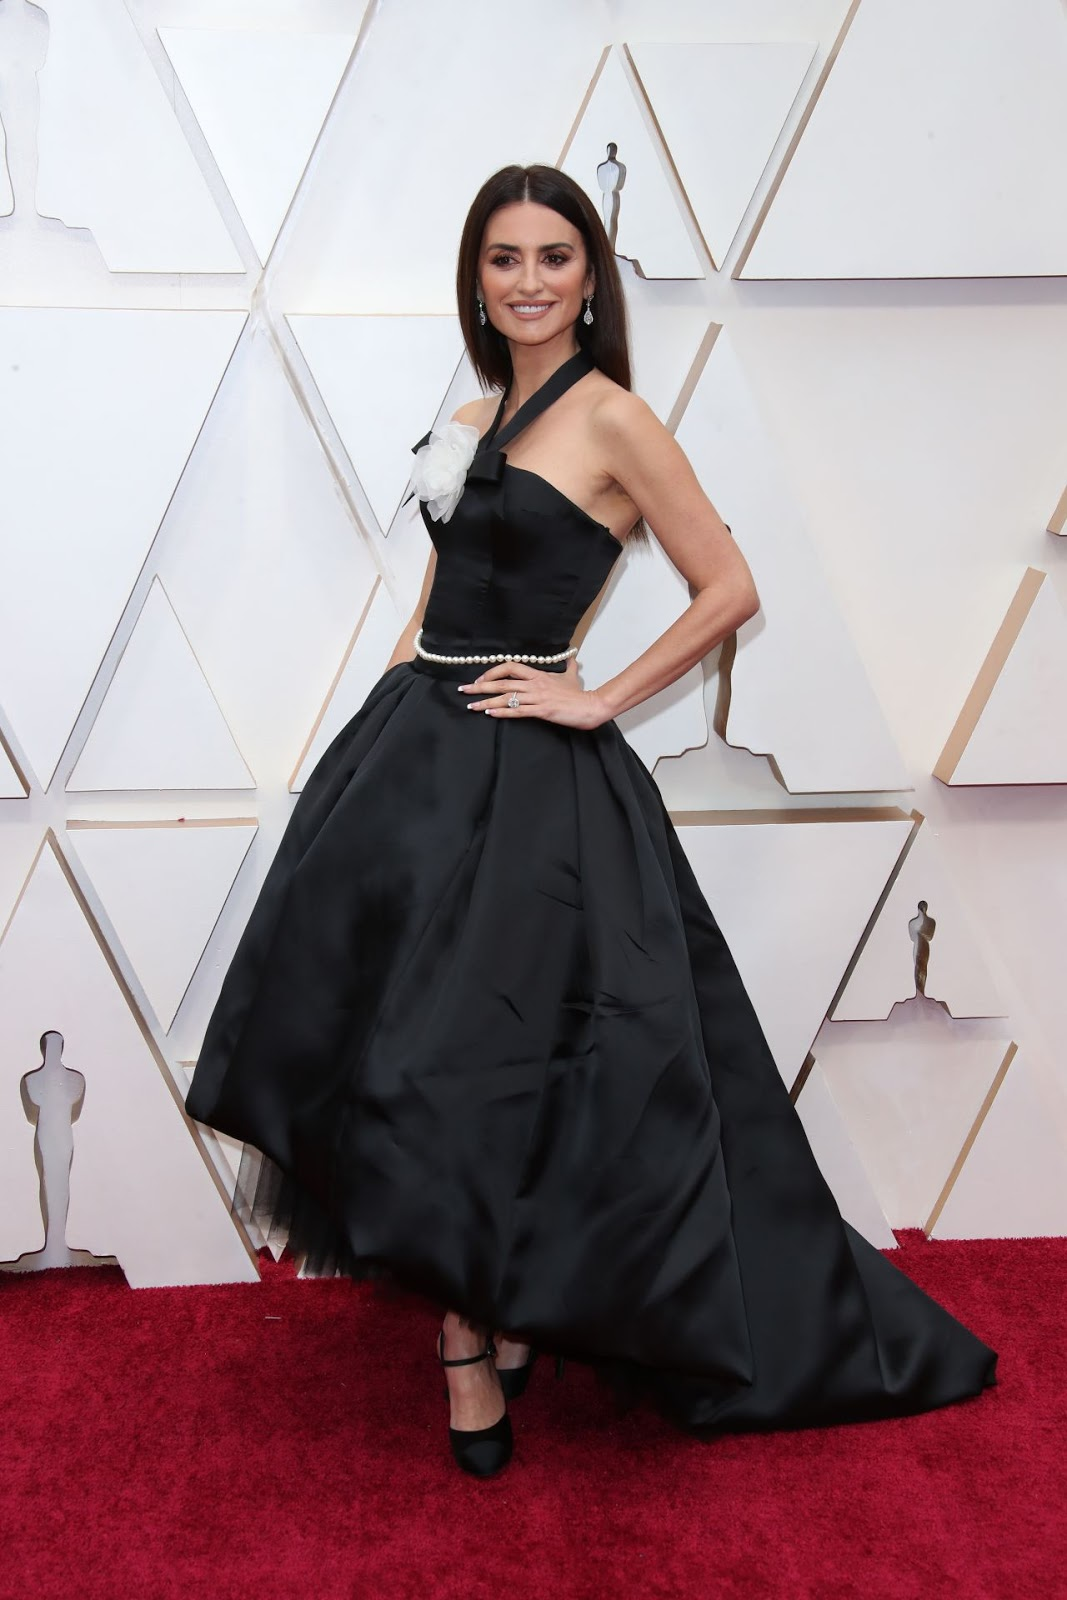 Penelope Cruz dazzles in satin black Chanel Couture at the 2020 Oscars